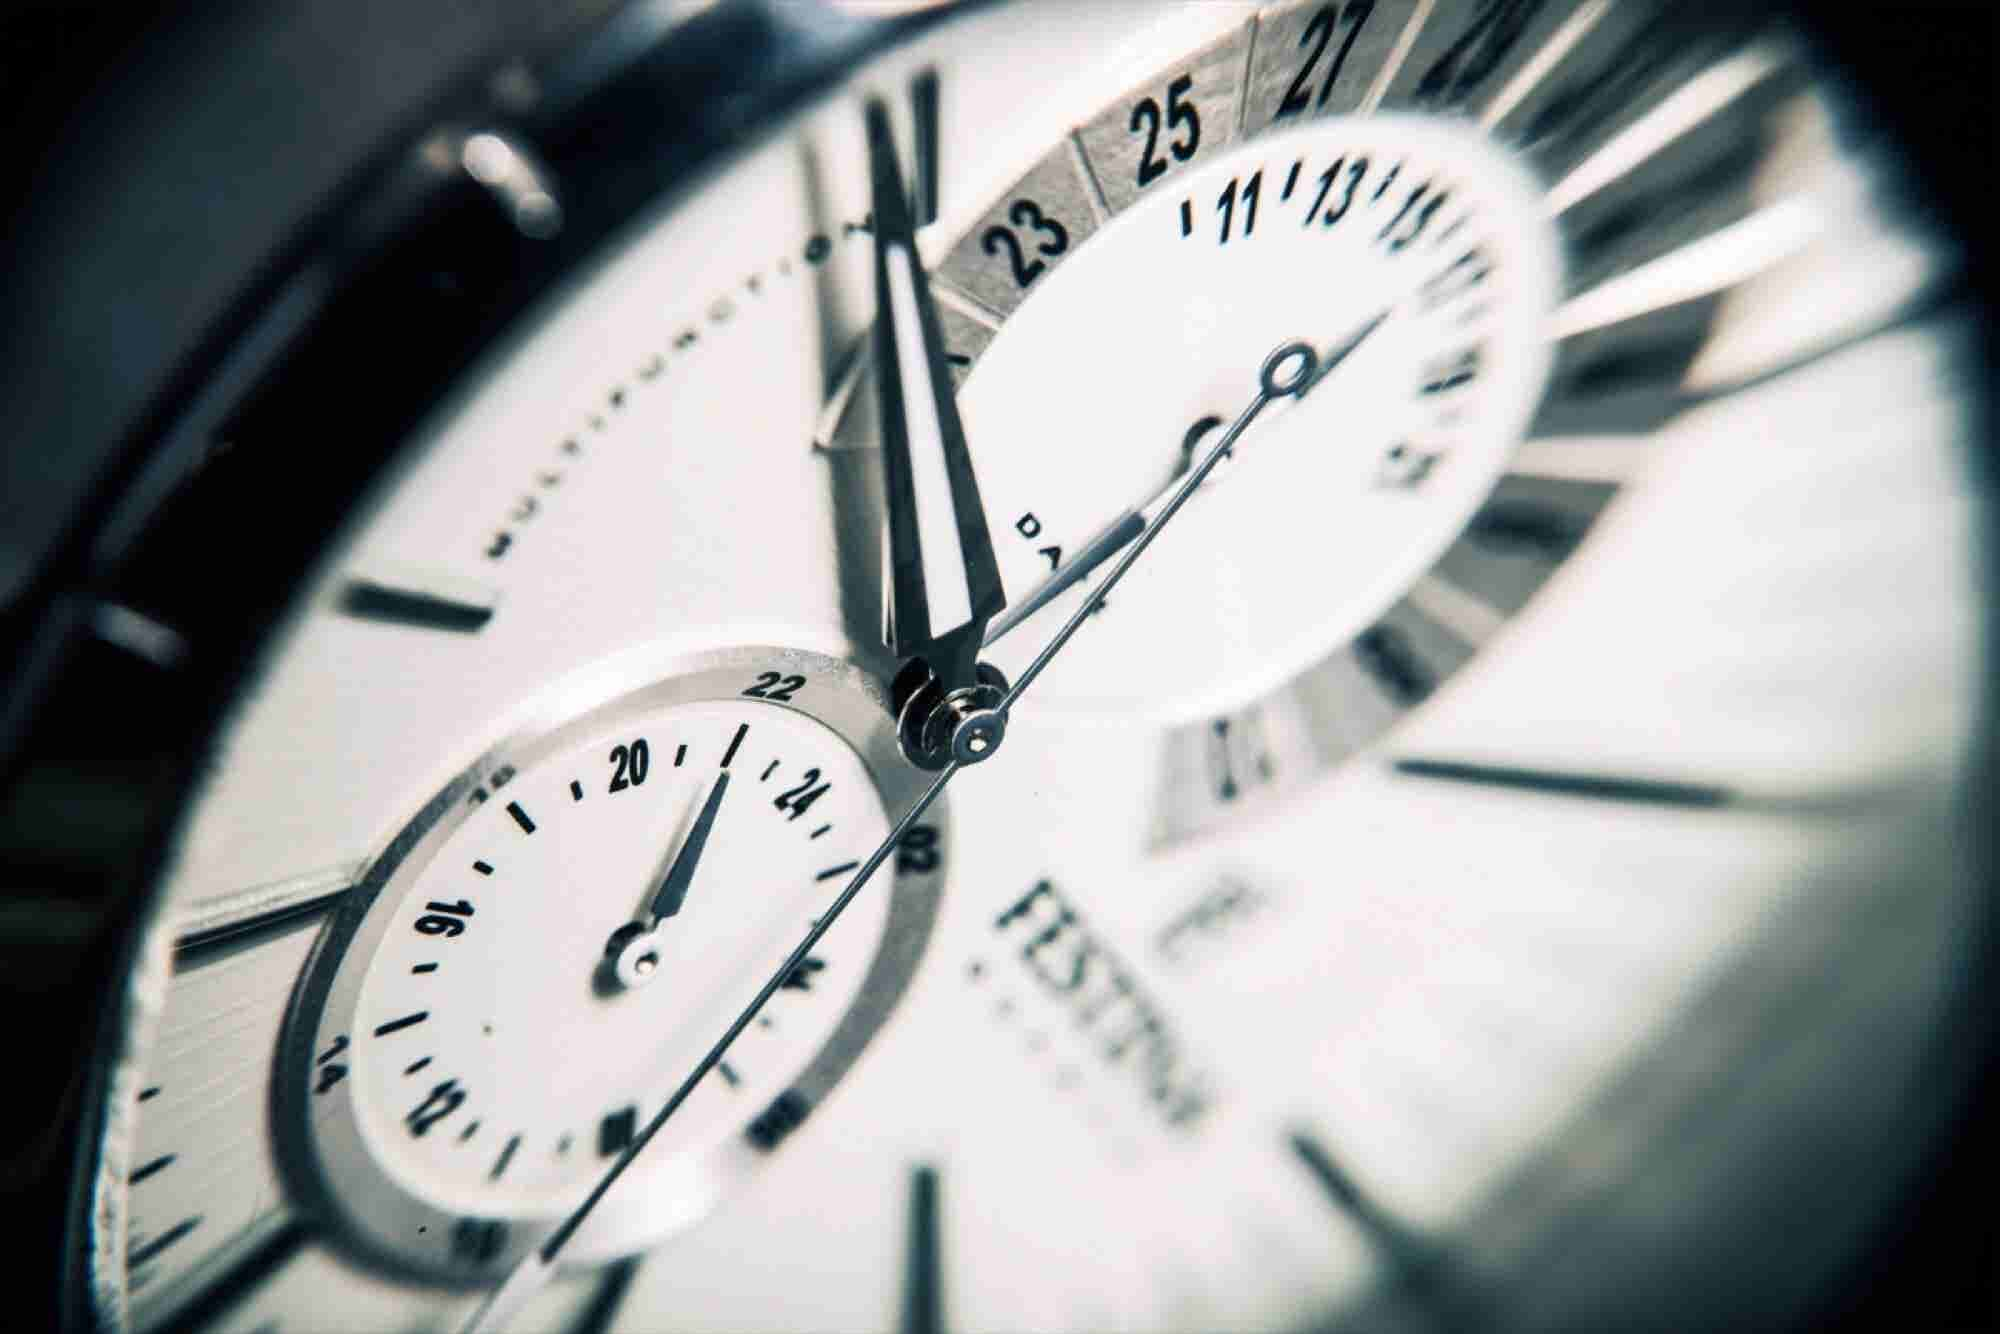 Those Long Hours at the Office Could Increase Your Risk of Heart Disea...